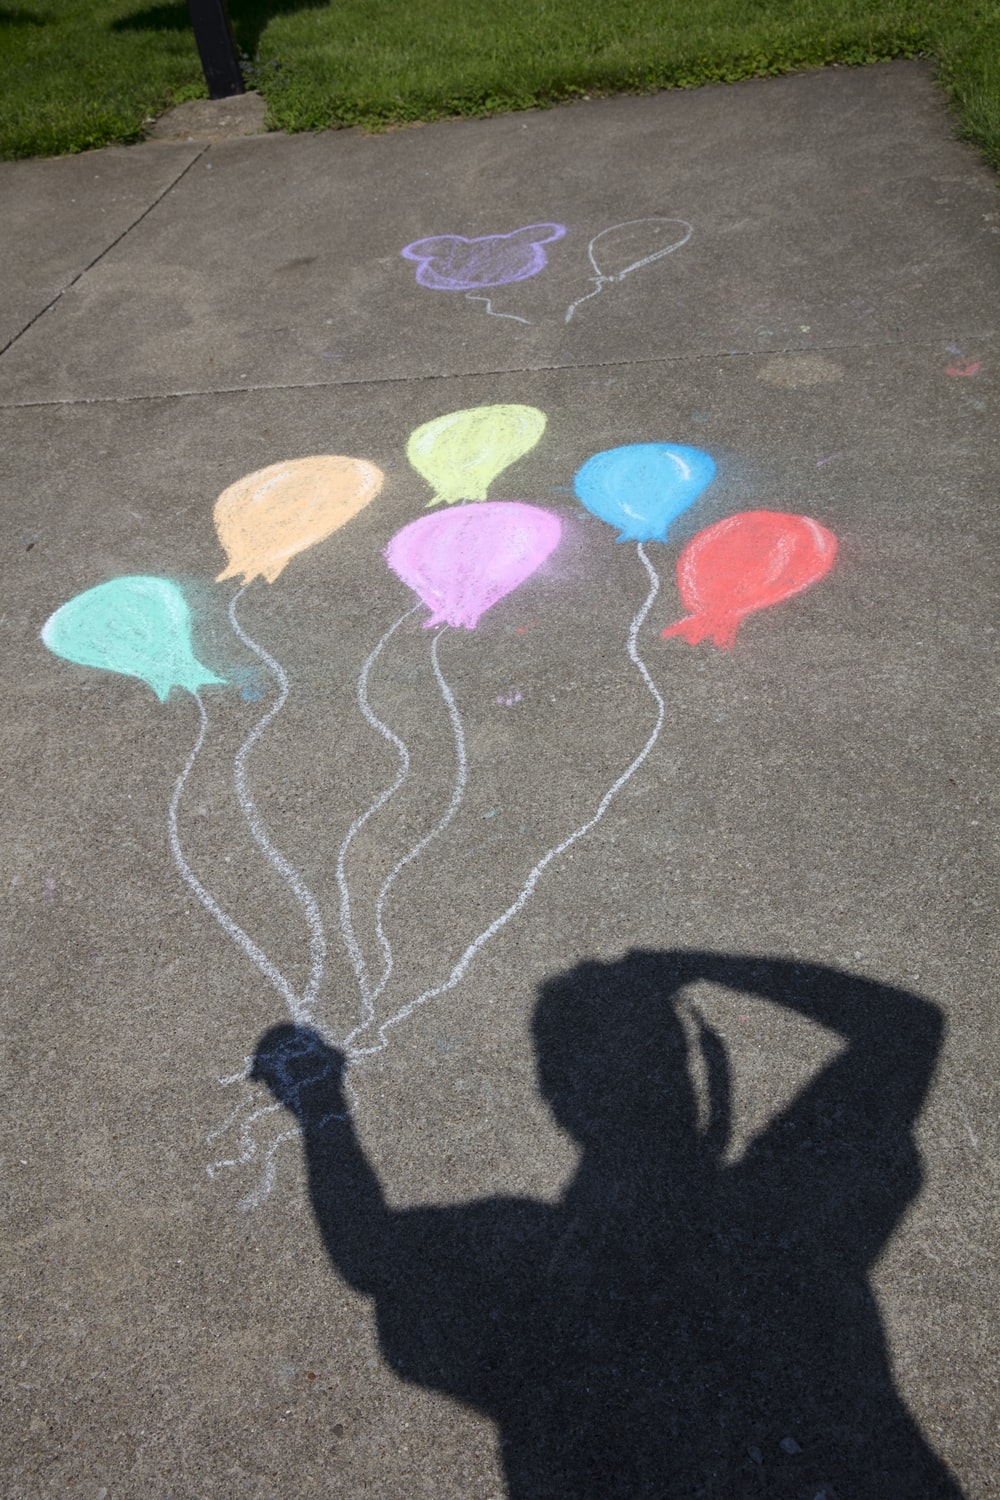 person's shadow holding bundle of balloons chalk art on concrete ground